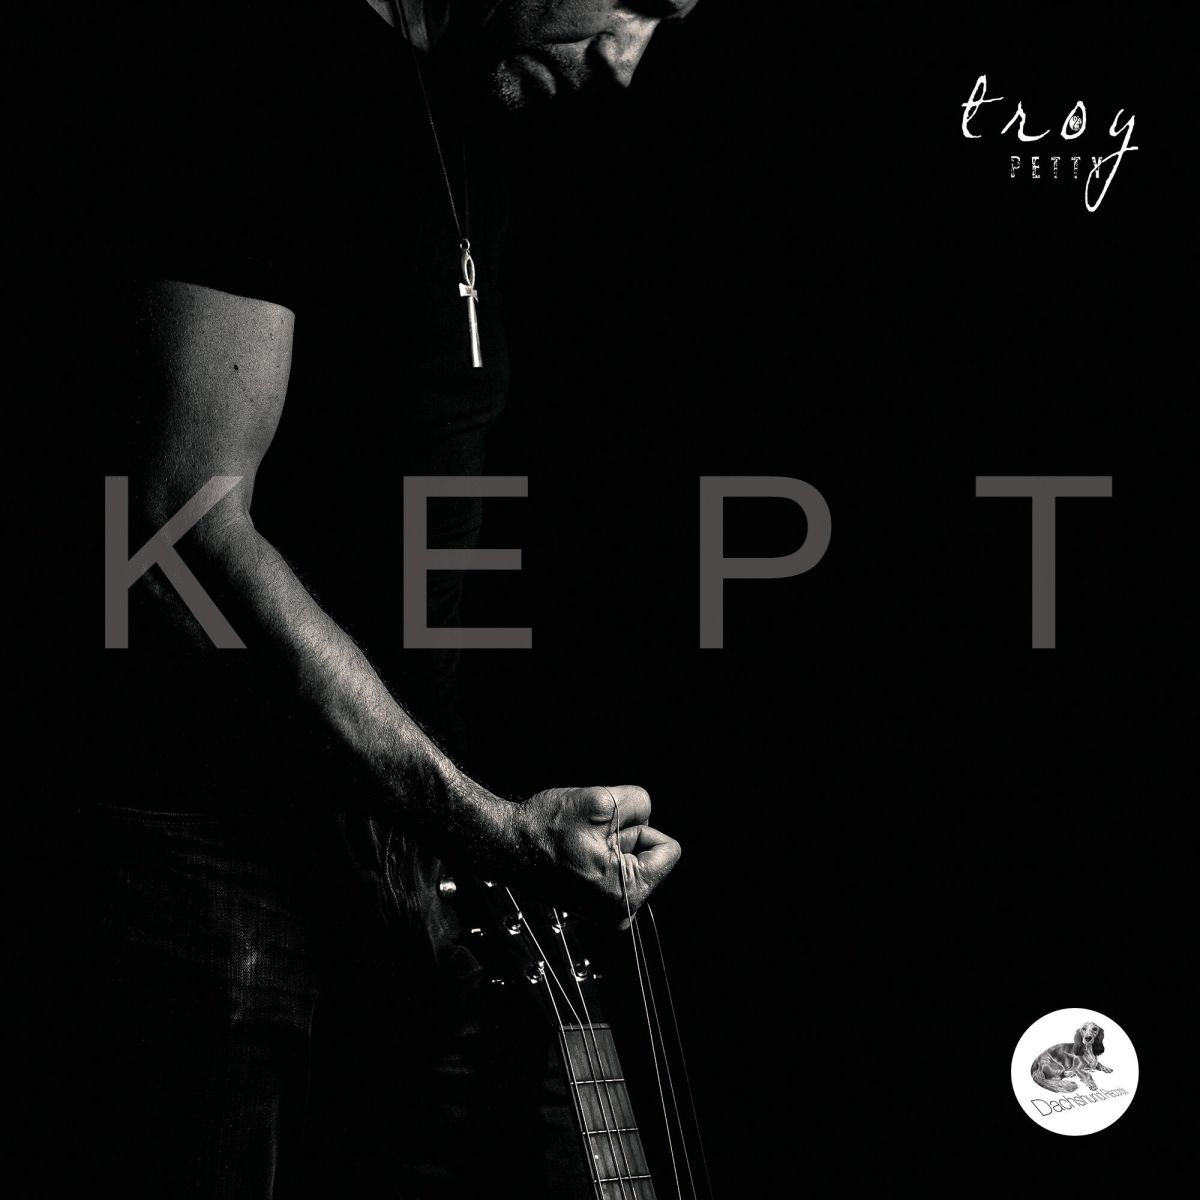 Kept -  Troy Petty (reviewed by Dave Franklin)